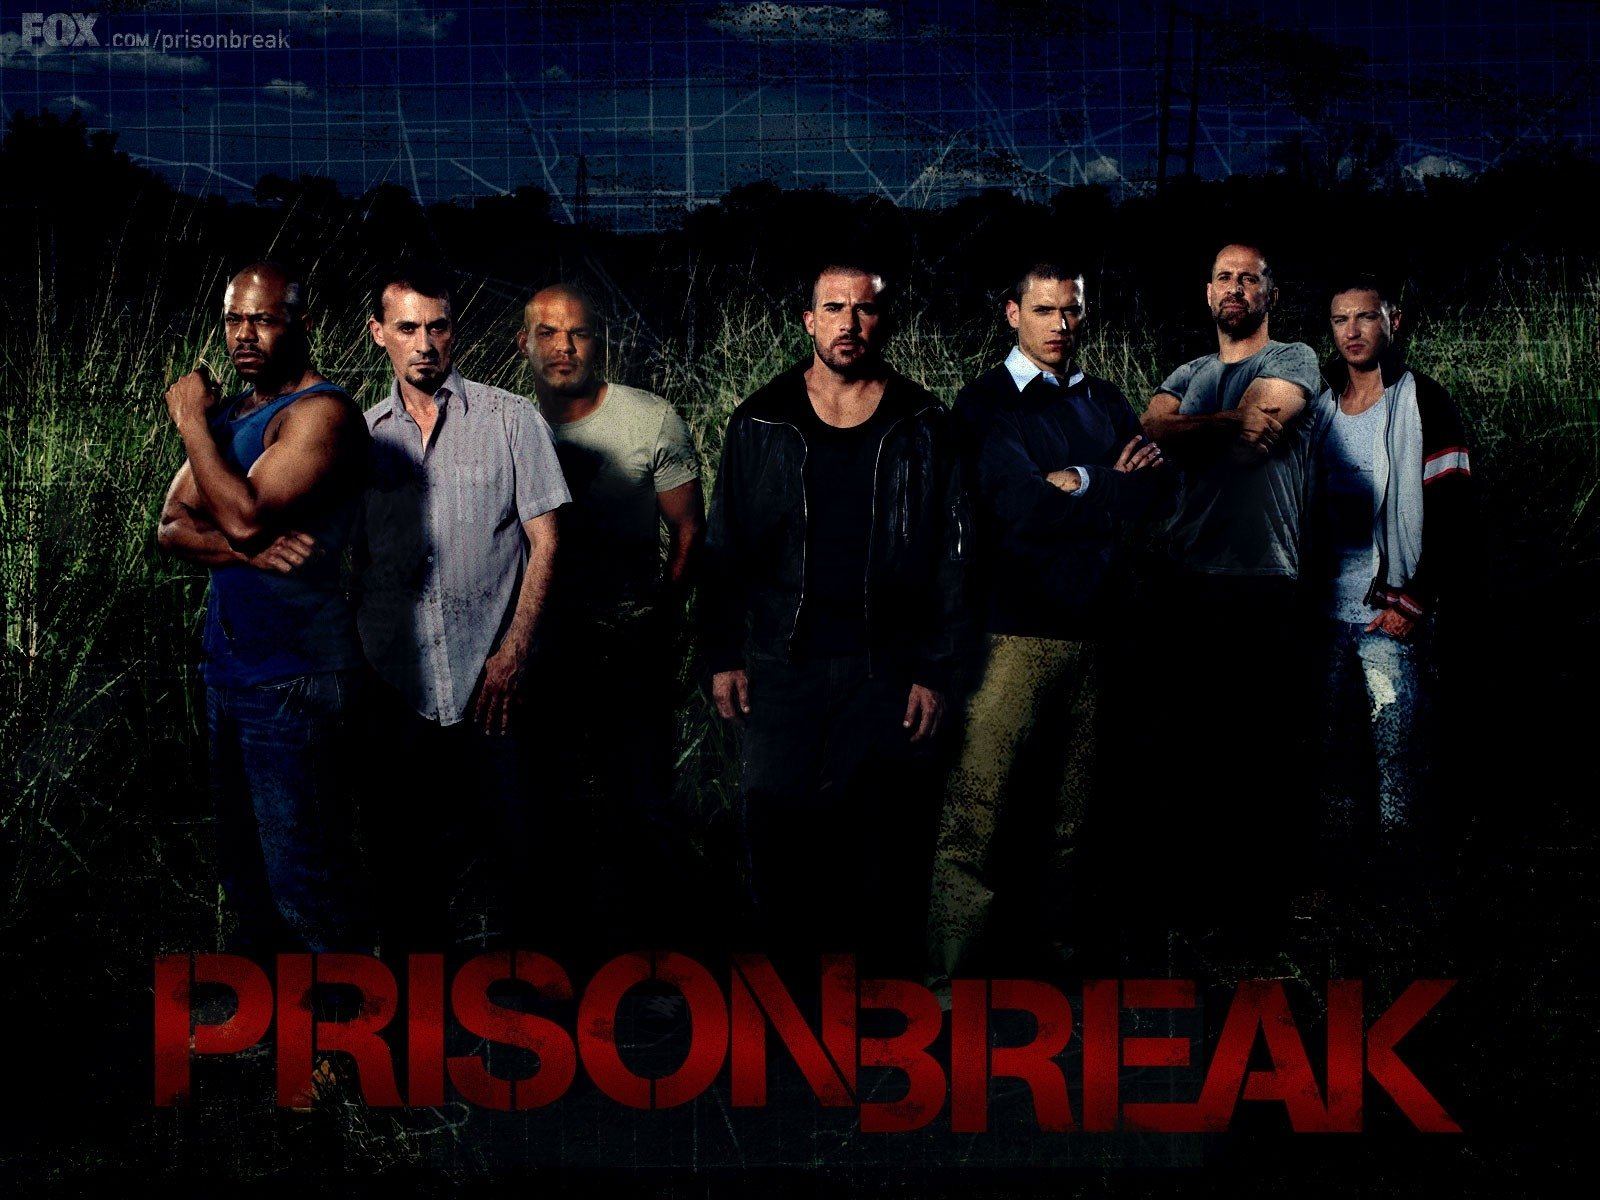 Wallpaper della serie televisiva Prison Break